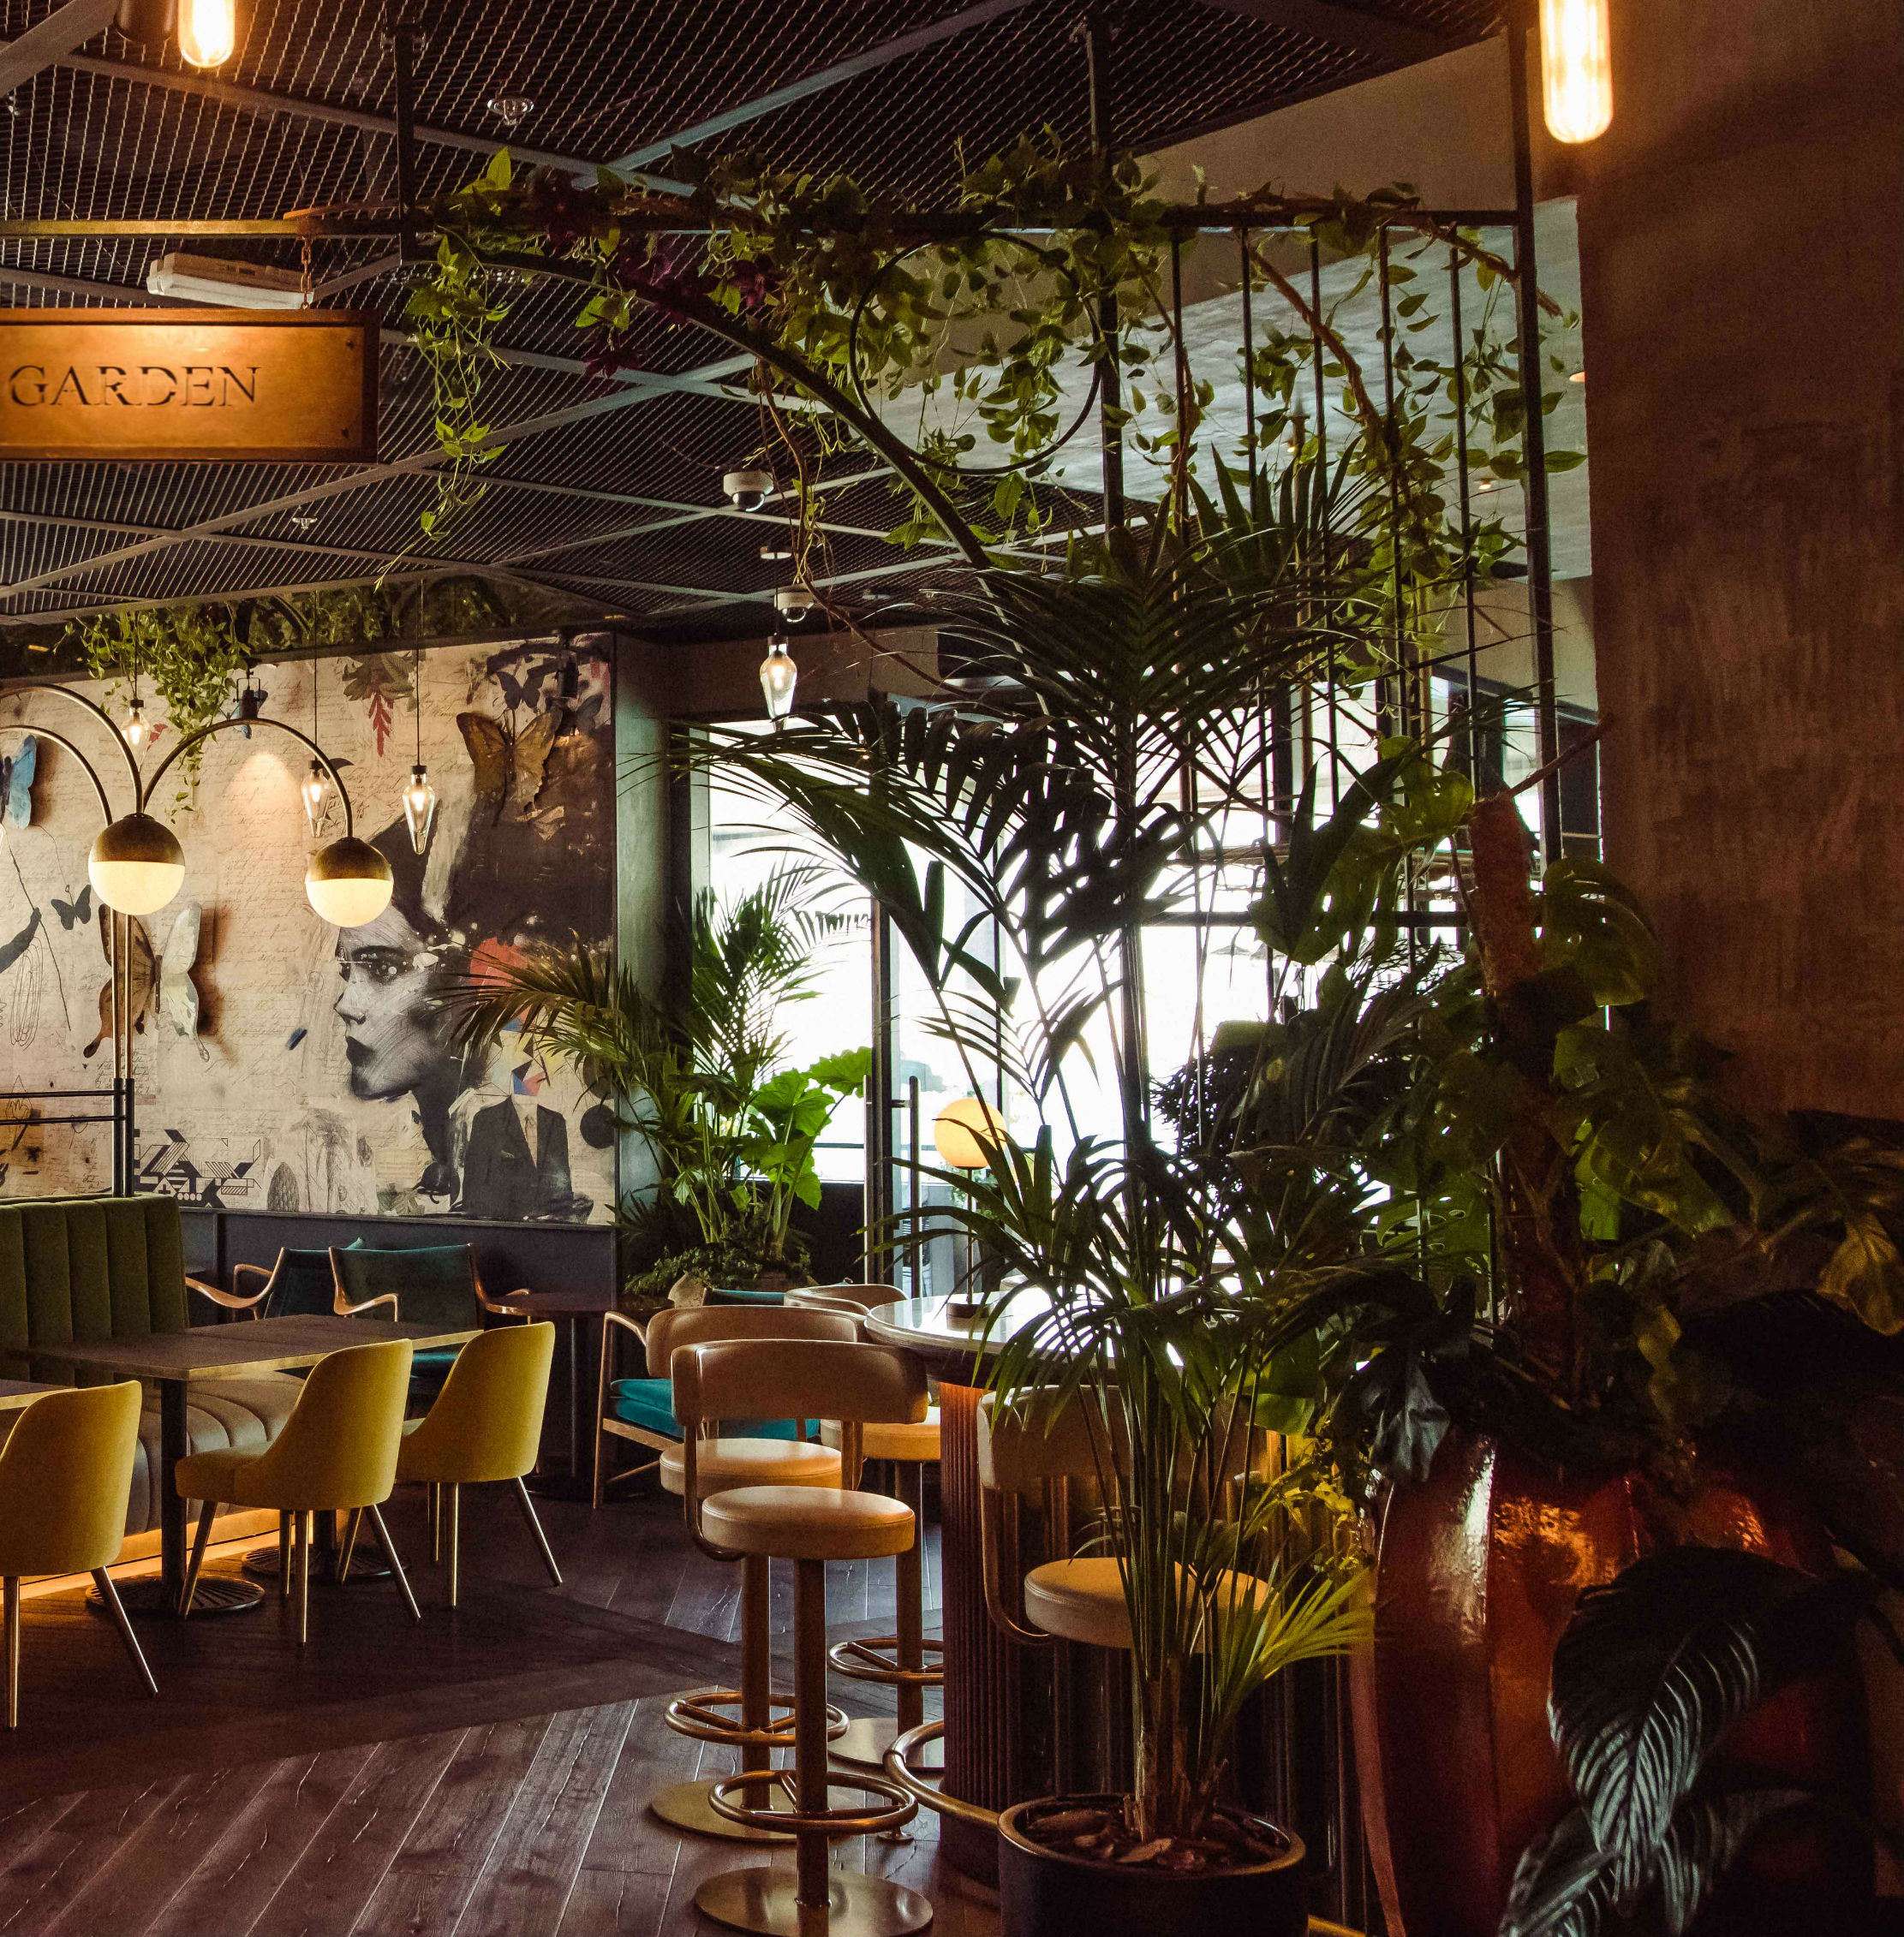 The London Project in Dubai is the botanically inspired restaurant we're escaping to this month